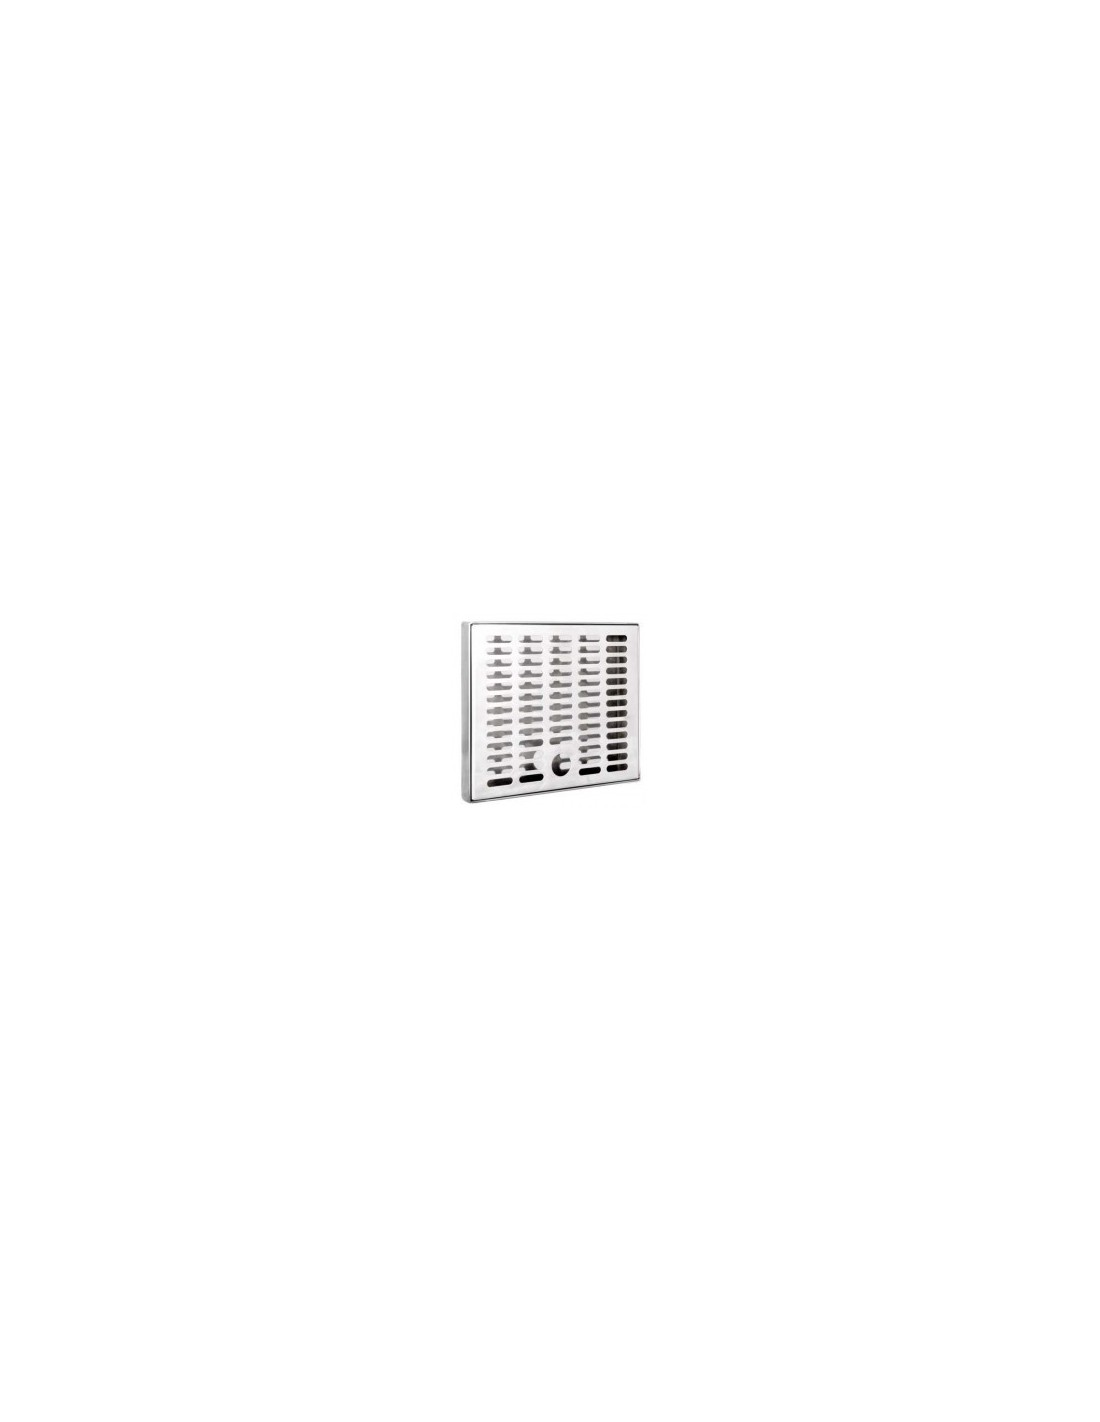 POL02140 - Drip tray in stainless steel 155x150x20 mm